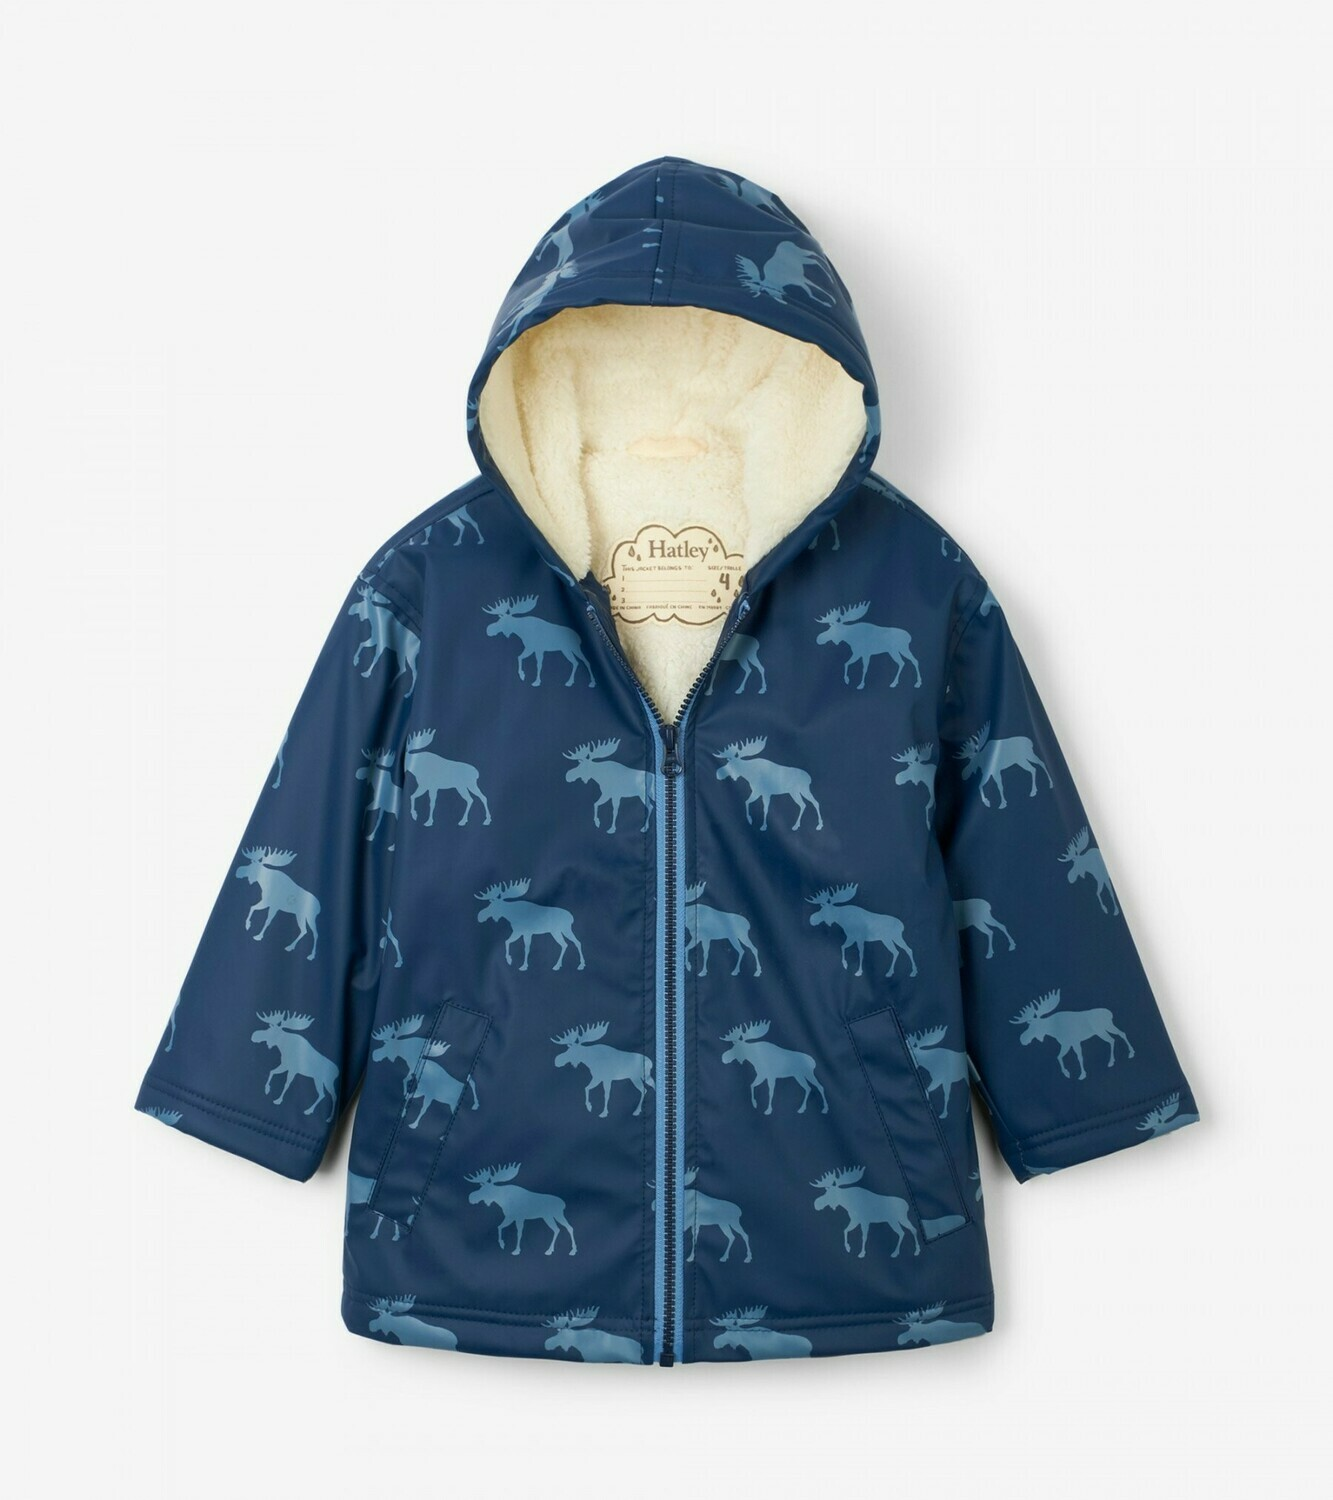 Hatley Moose Silhouettes Sherpa Lined Splash Jacket